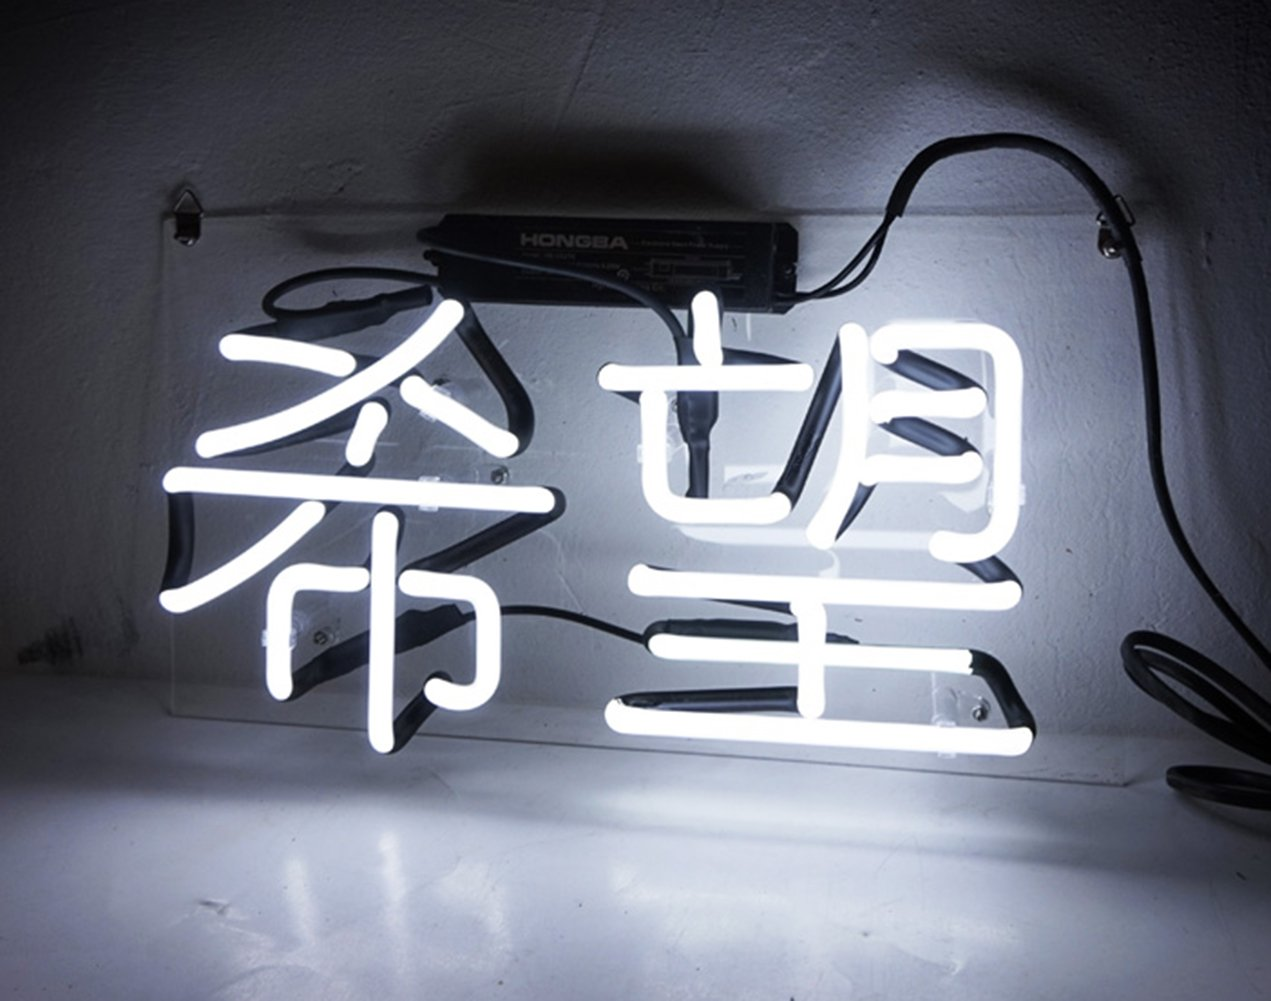 New Beer Neon Signs Neon Sign Chinese Meaning 'Hope' Lamp Light Room Decor for Home Bedroom Bar Hotel Beach Cocktail Recreational Game Room 13'' x 7''